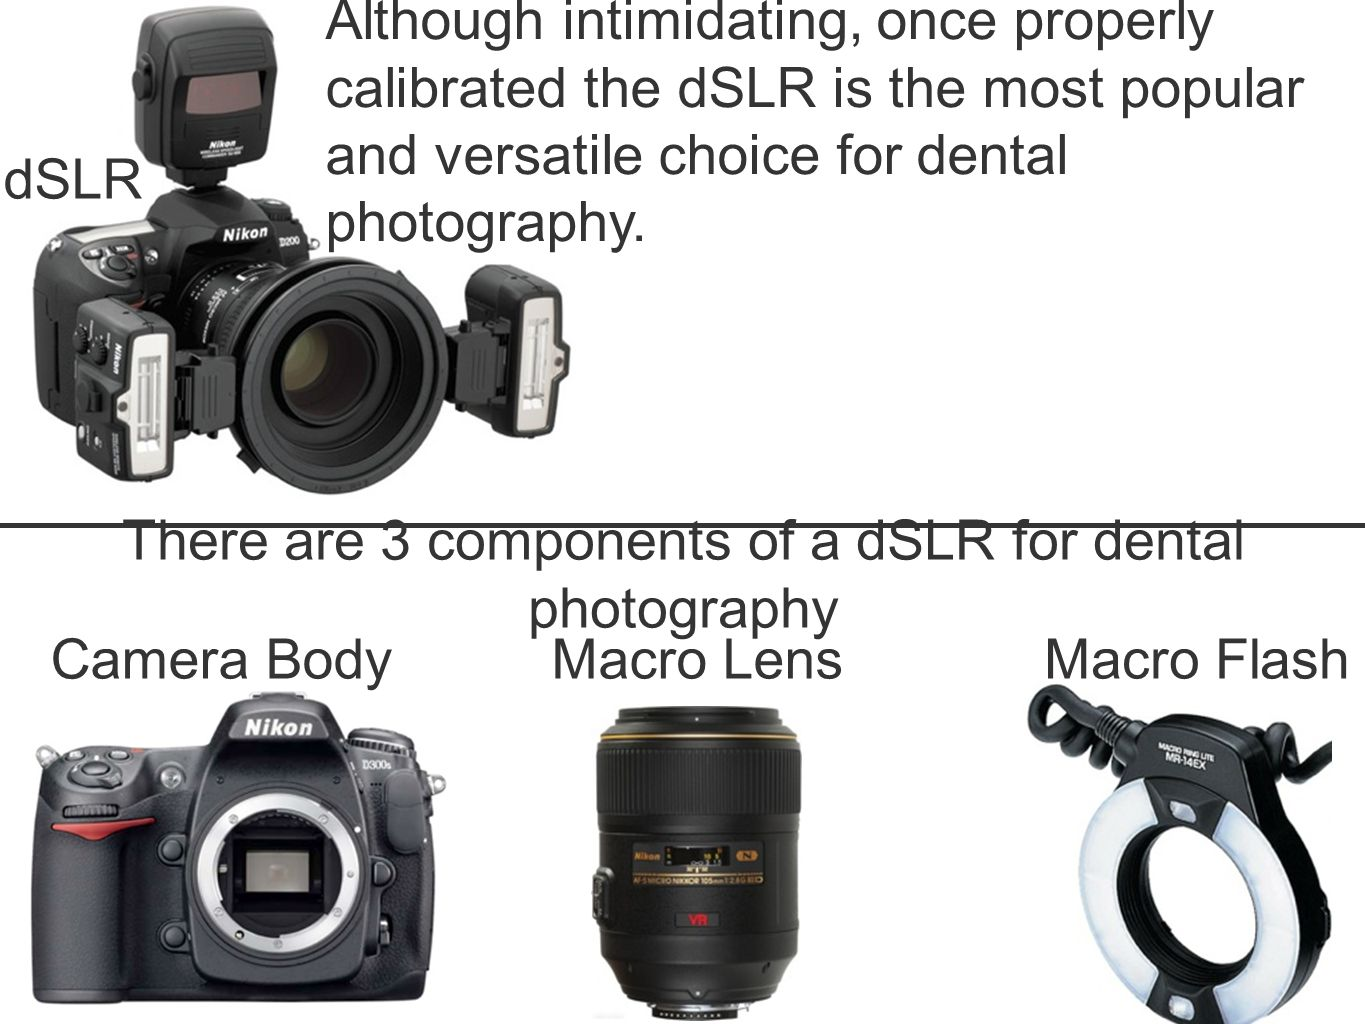 Although intimidating, once properly calibrated the dSLR is the most popular and versatile choice for dental photography.